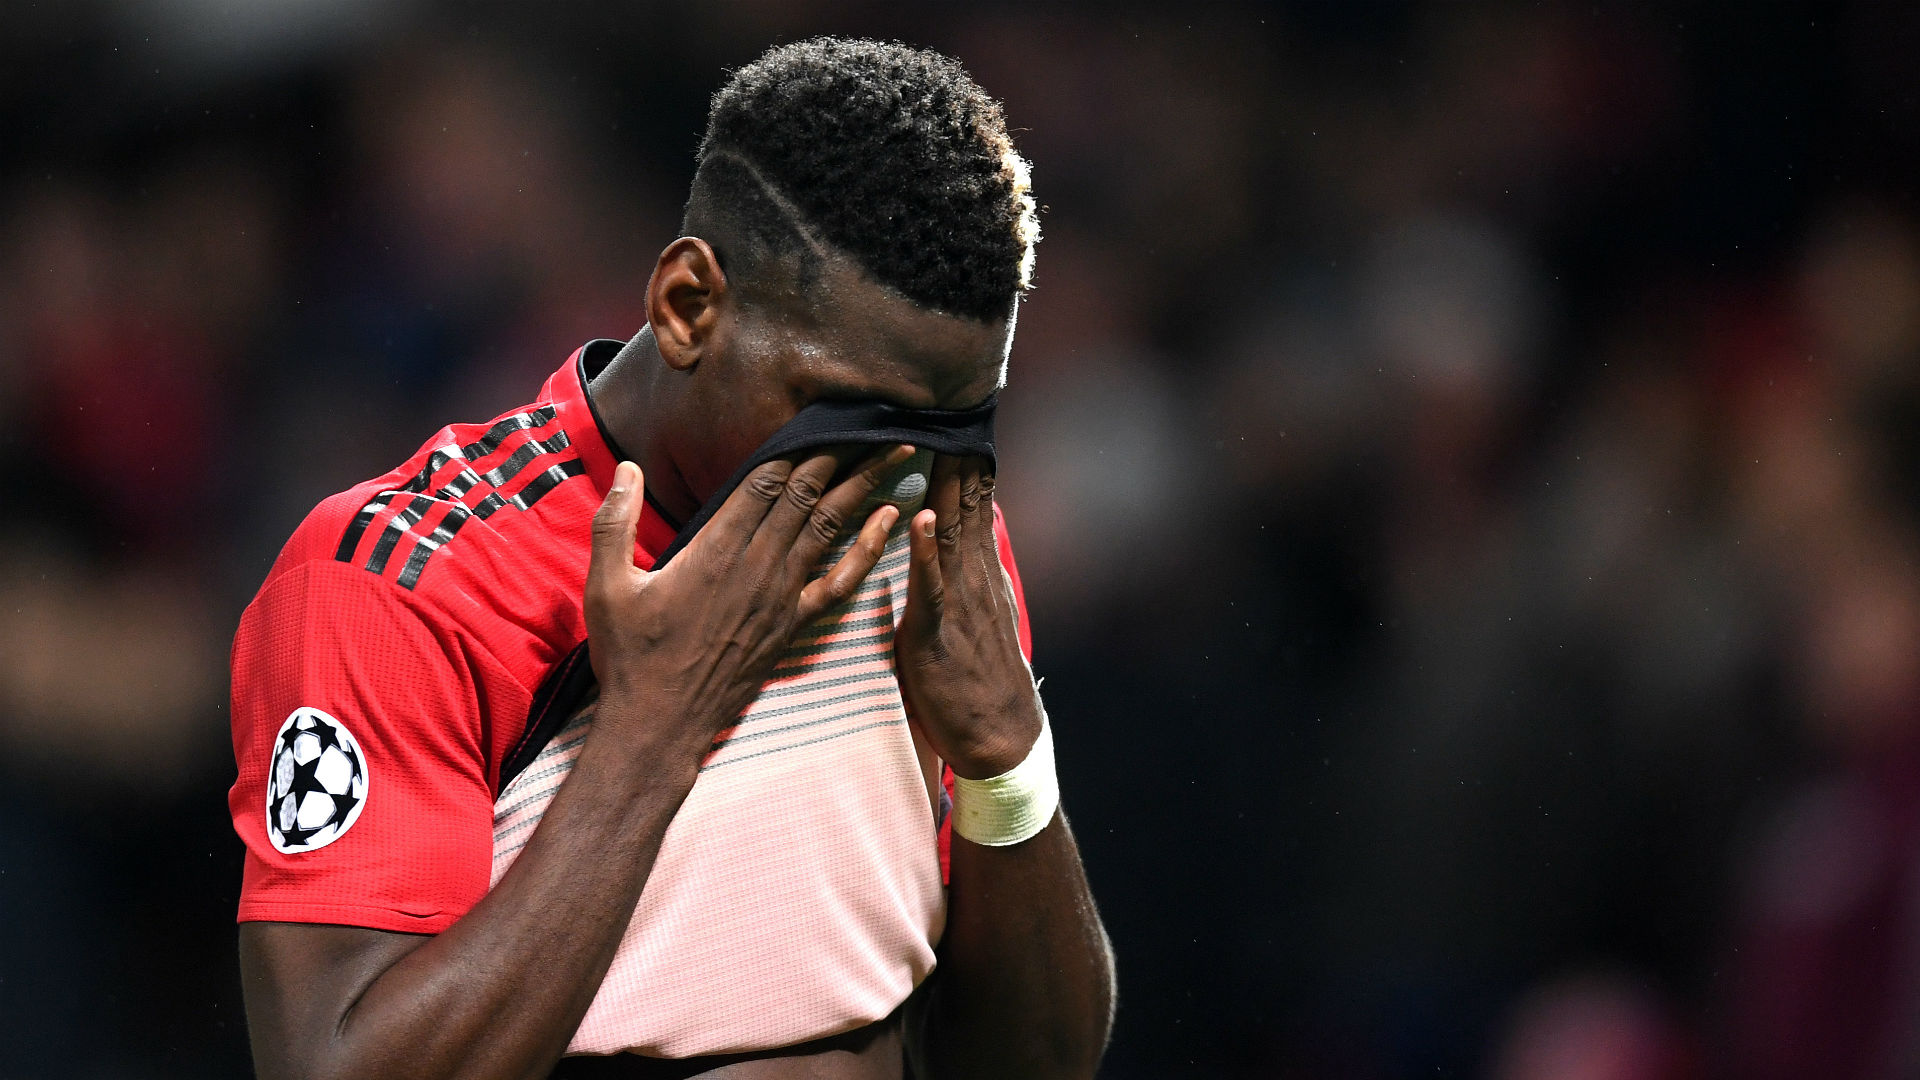 Pogba admits he may have to alter penalty approach after Pickford save